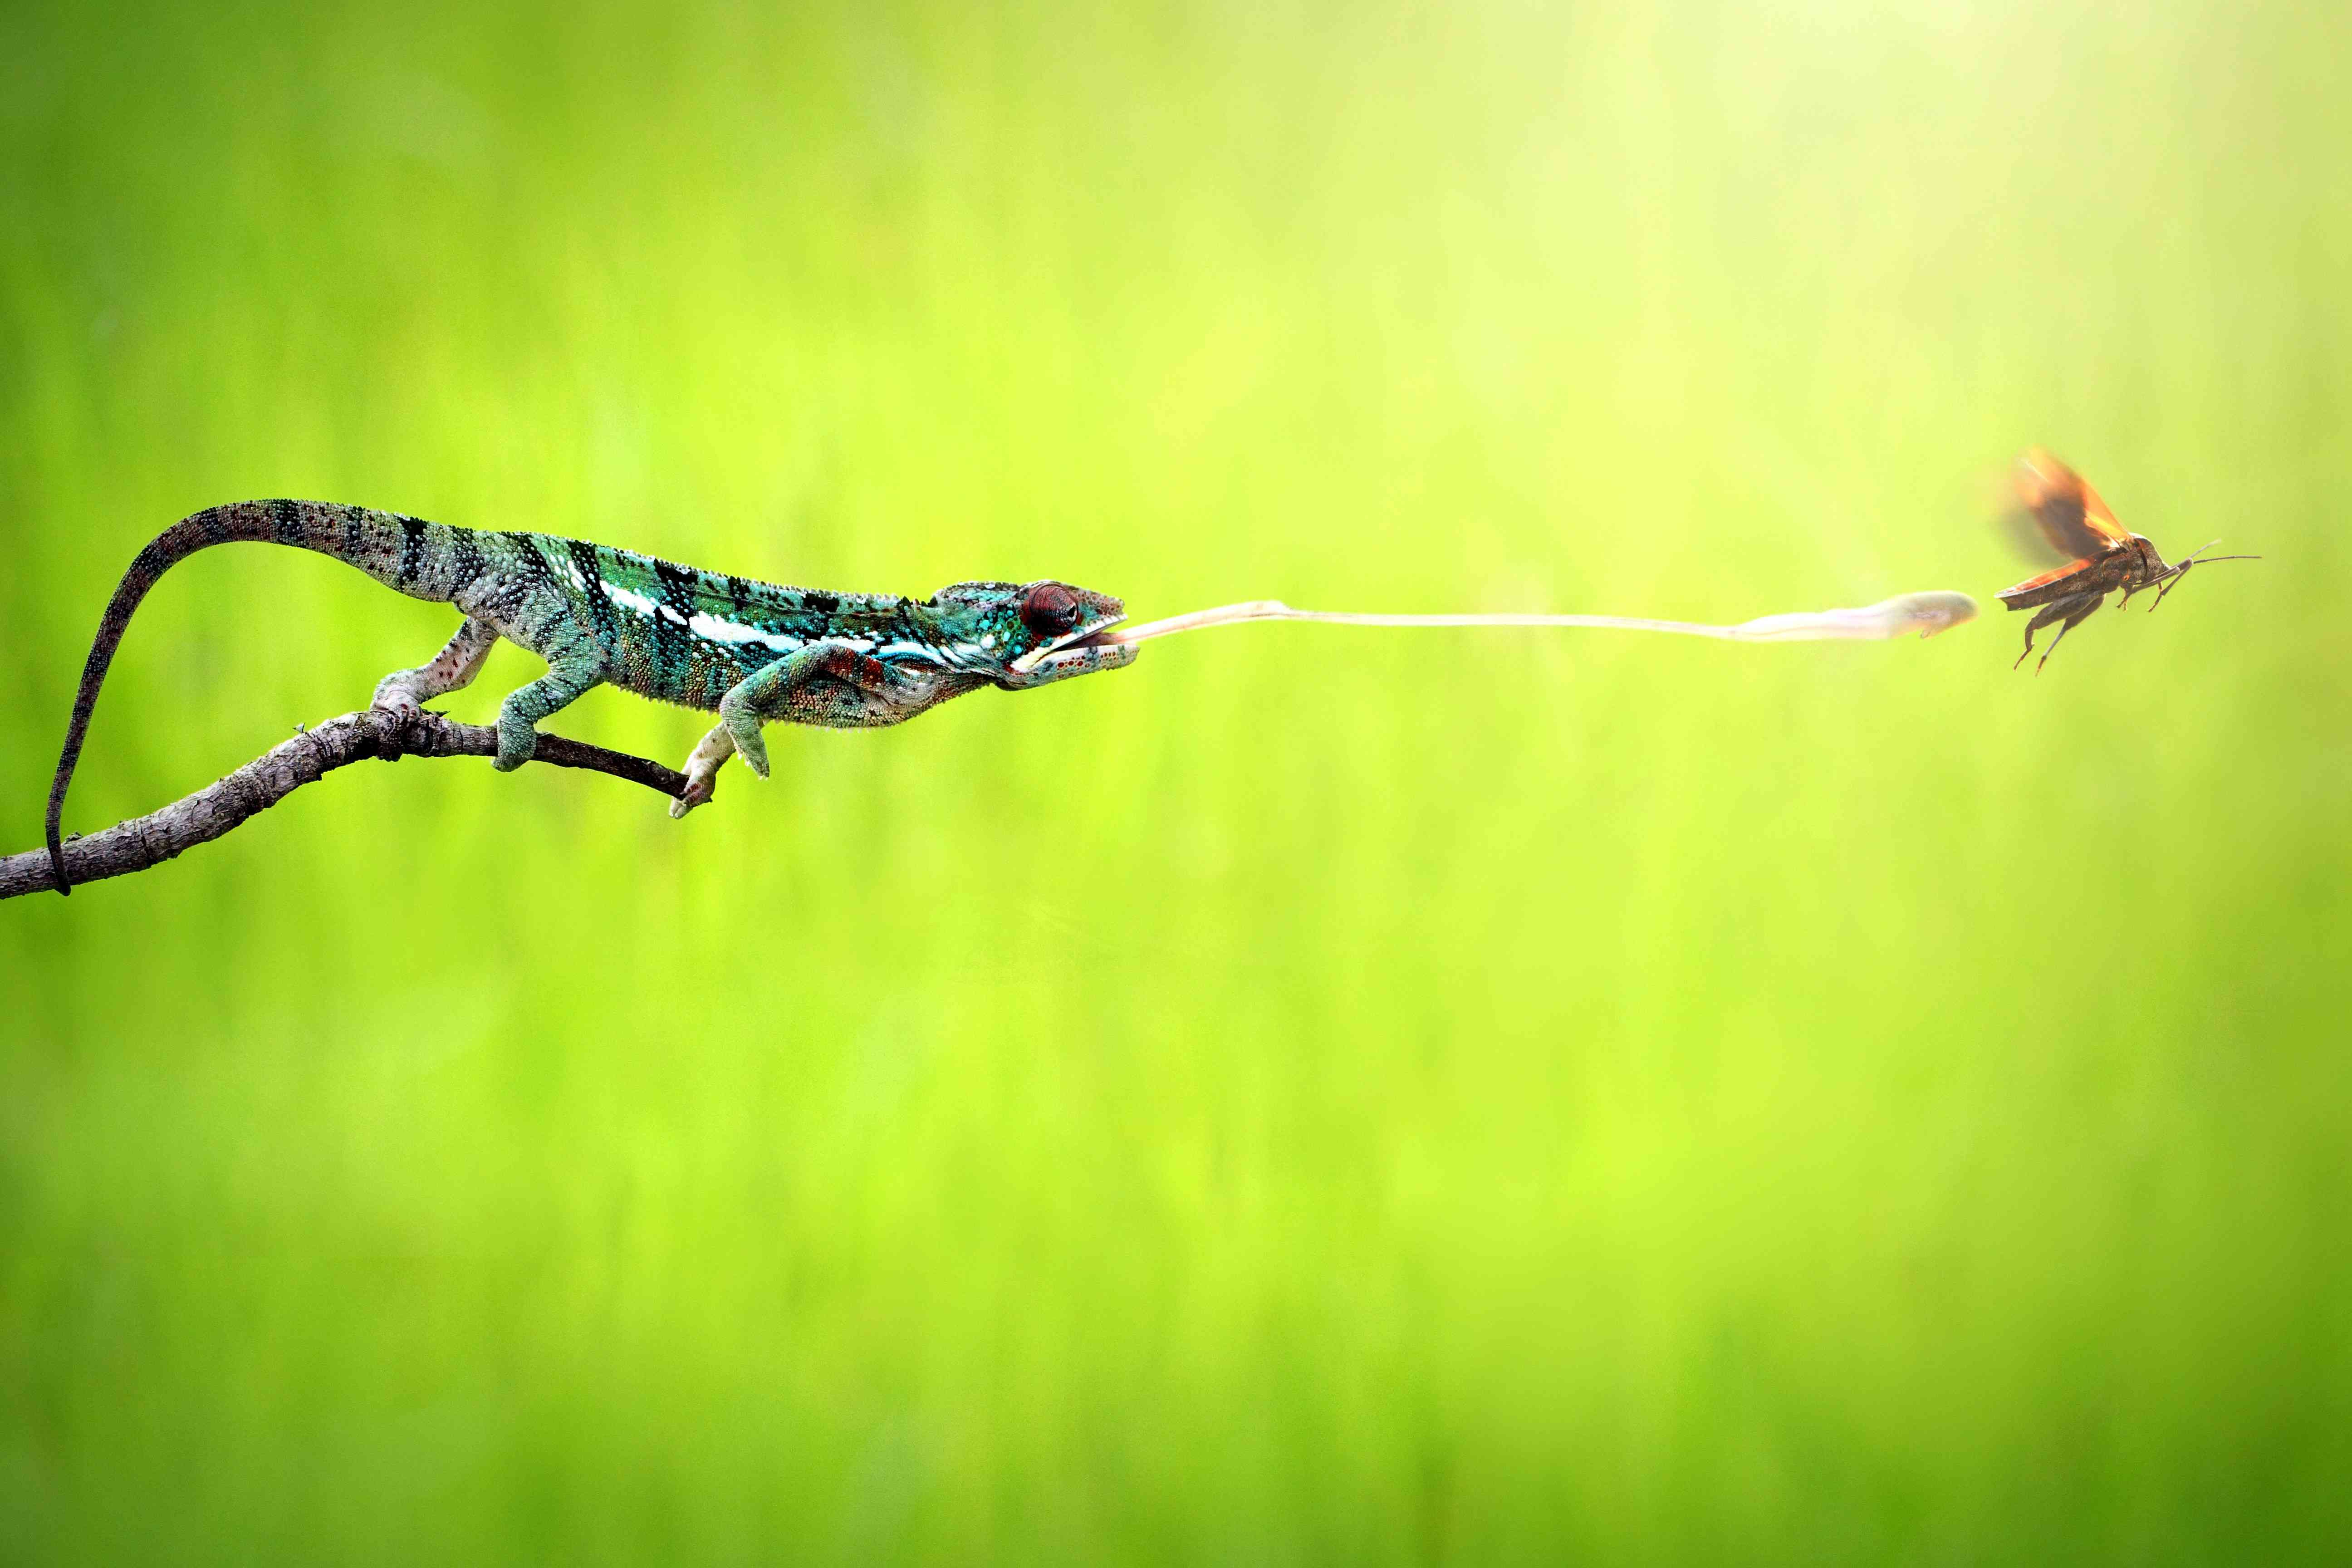 A hunting chameleon shoots its tongue at a bug in Indoneisa